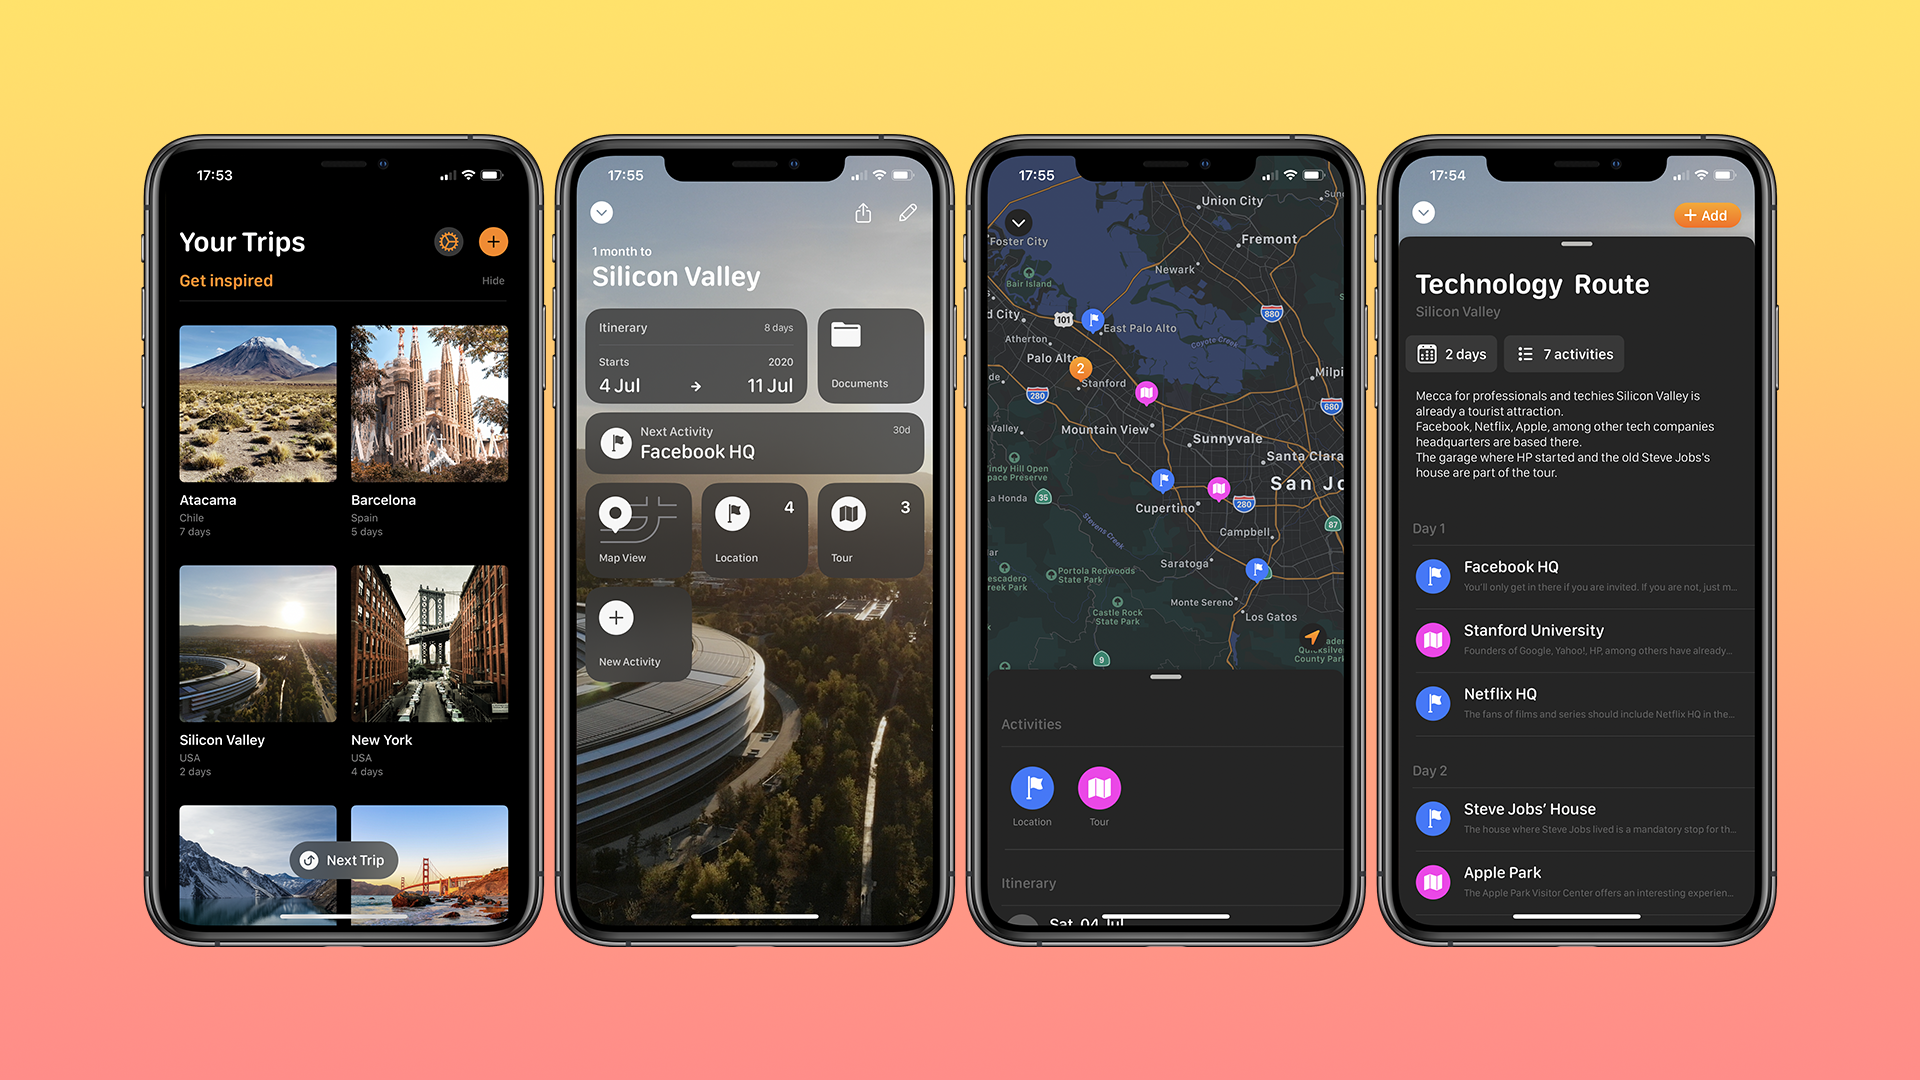 Tripsy lets you organize everything you need to plan a great trip